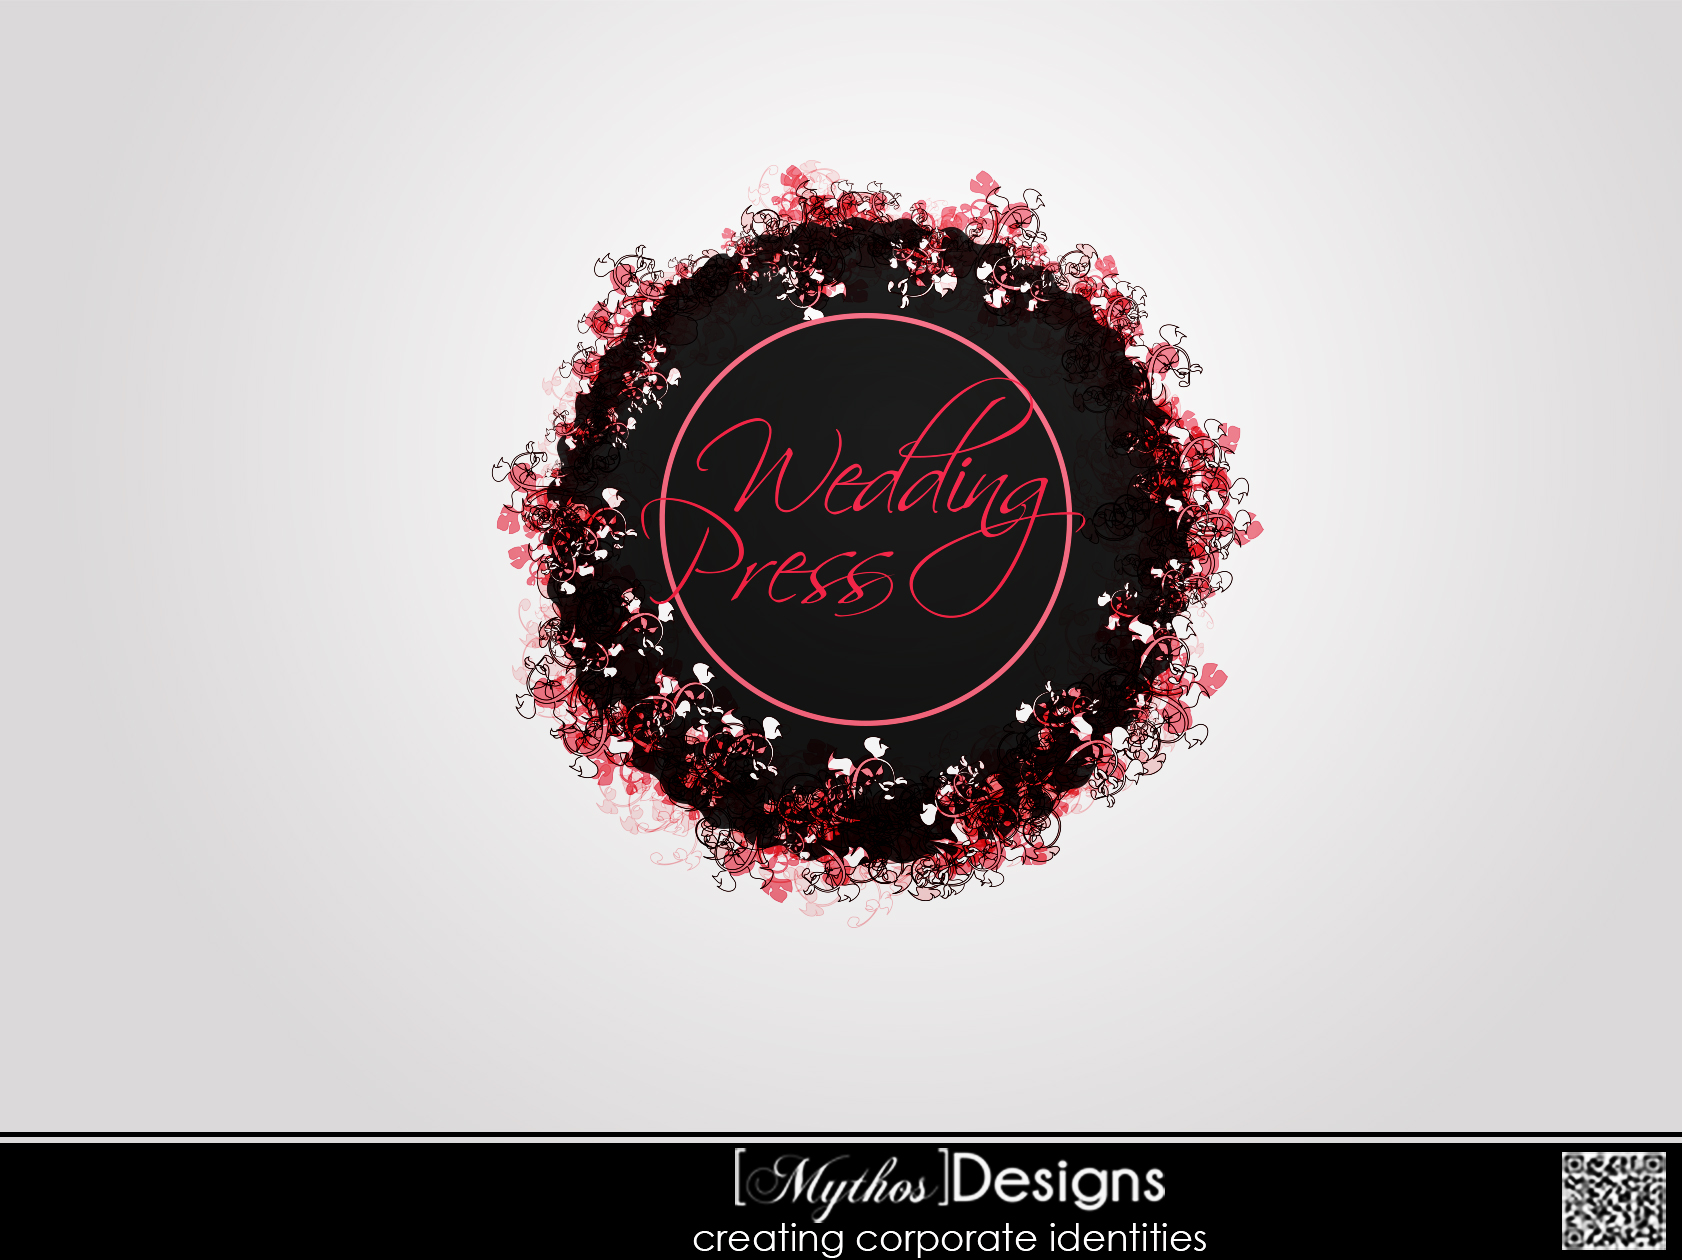 Logo Design by Mythos Designs - Entry No. 33 in the Logo Design Contest Wedding Writes Logo Design.